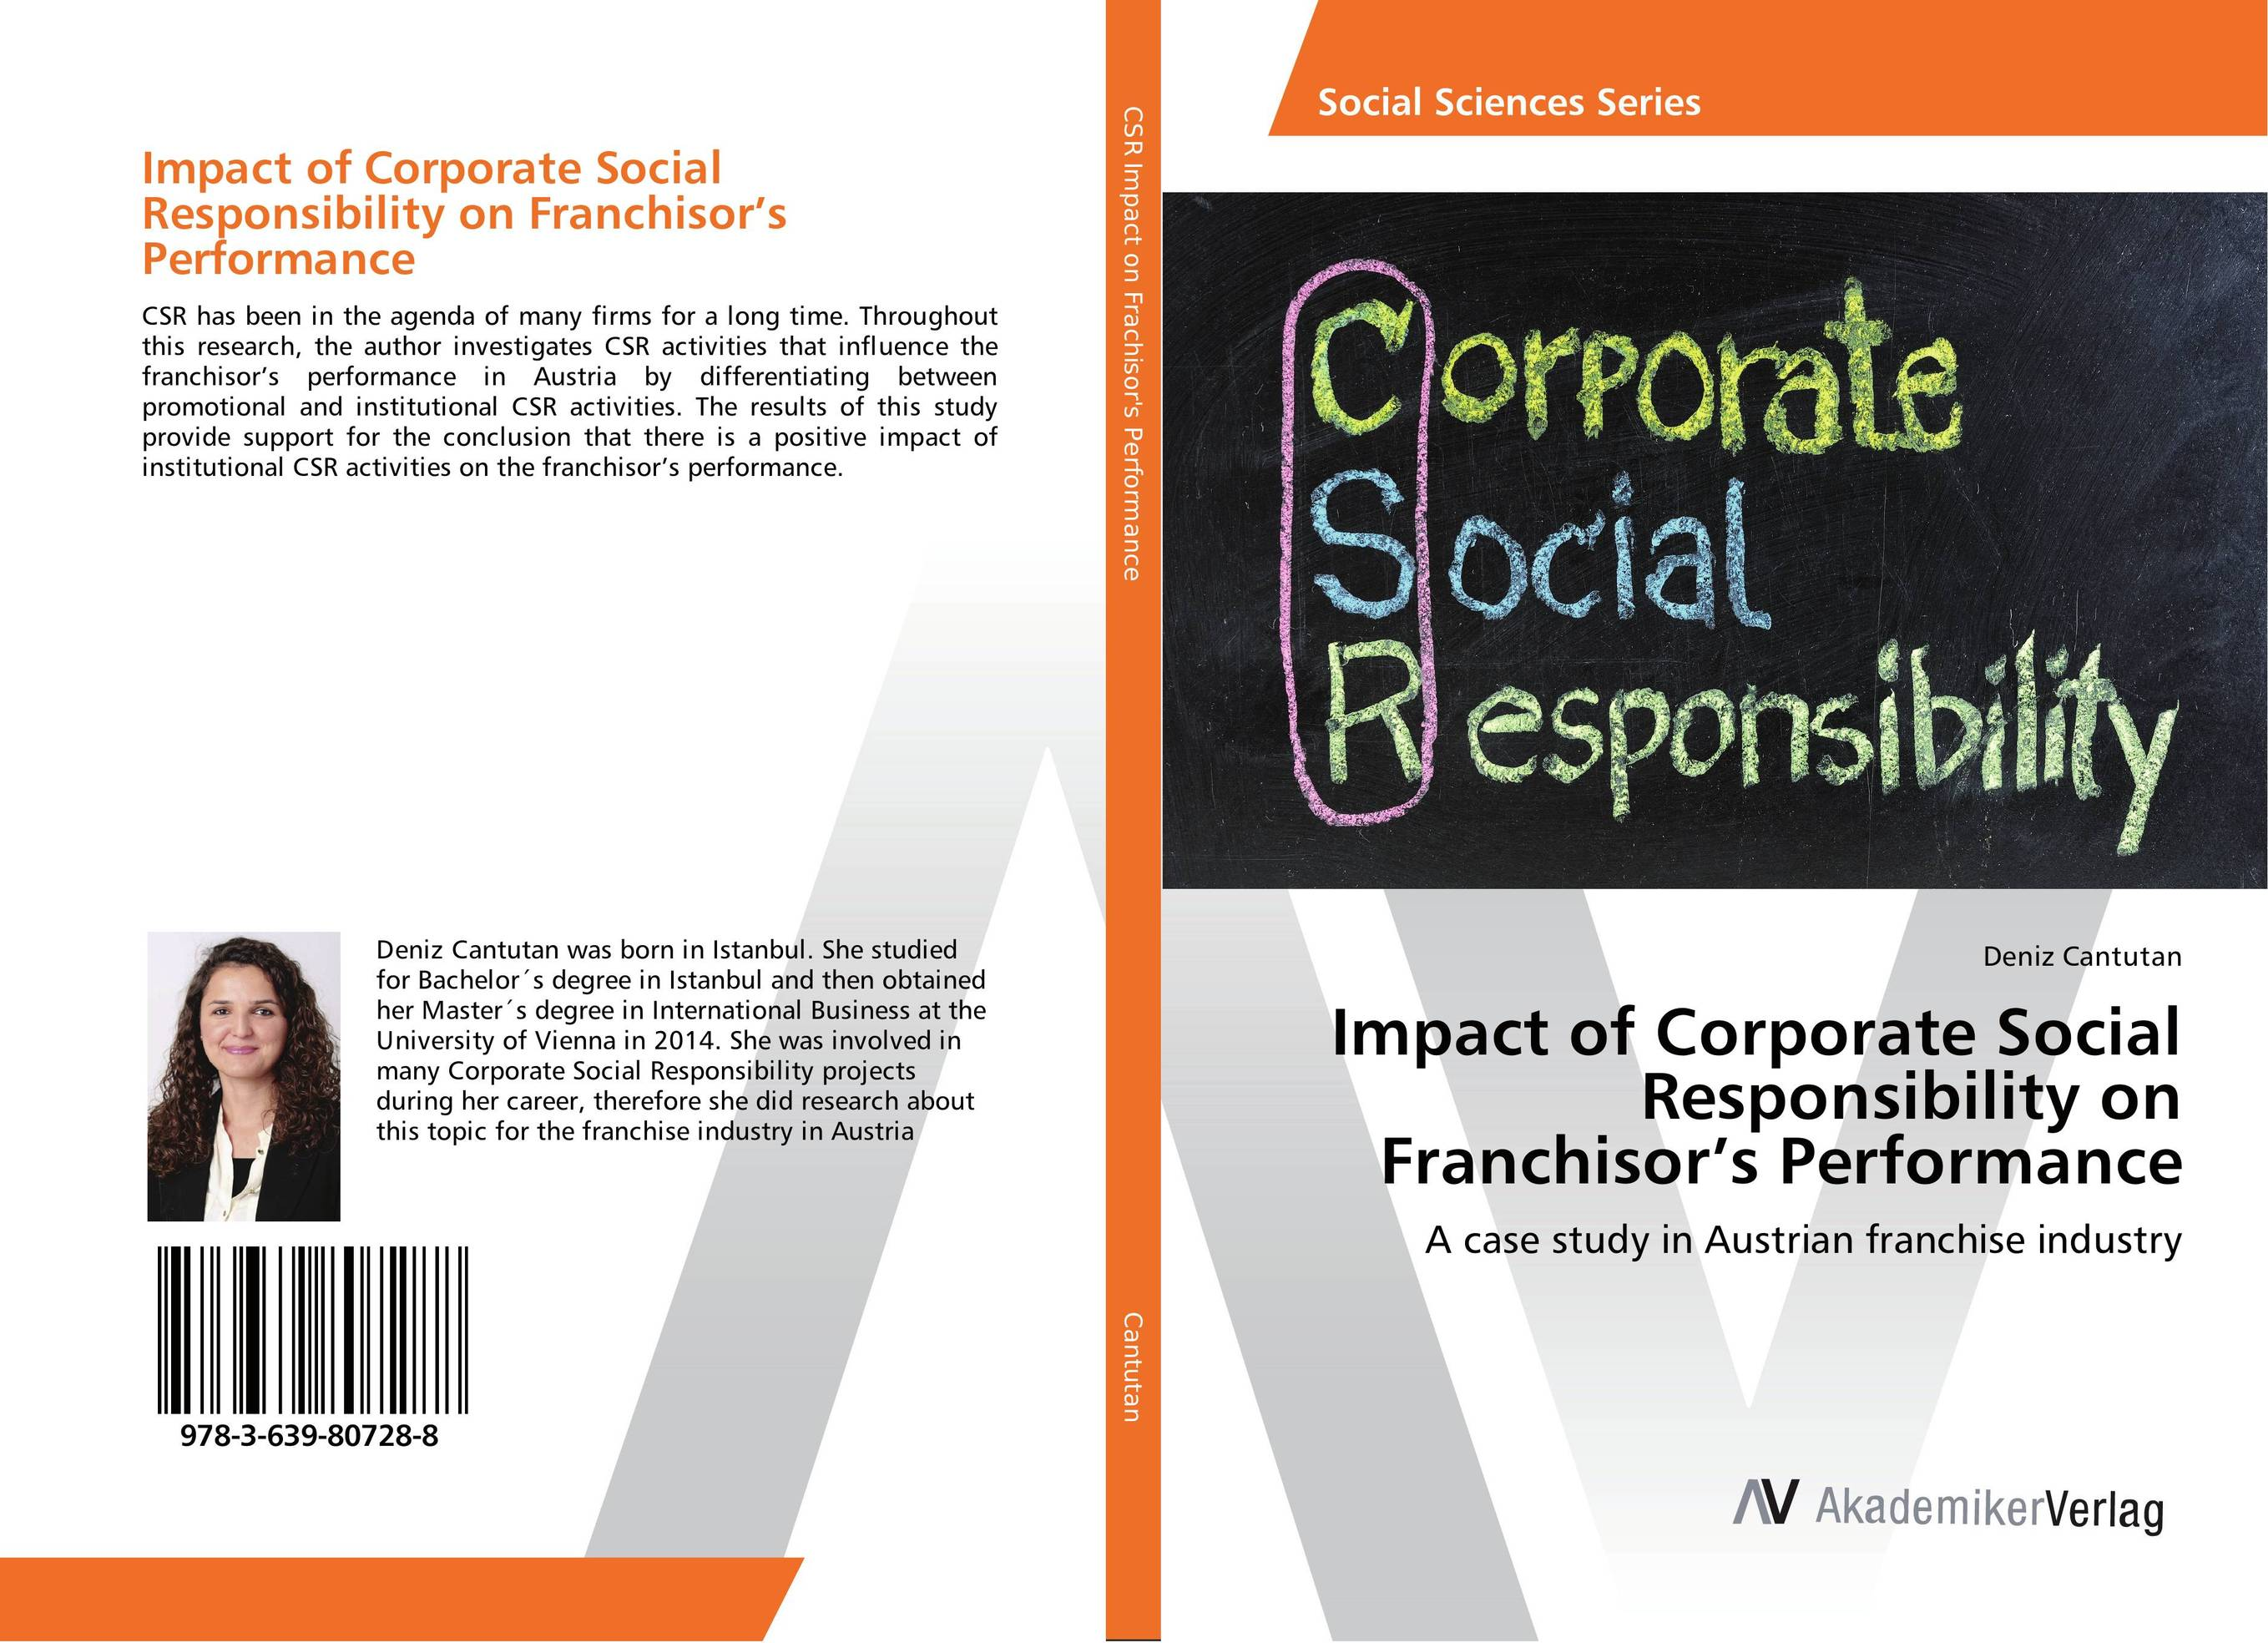 Impact of Corporate Social Responsibility on Franchisor's Performance neuroethological studies on the scorpion's circadian activities